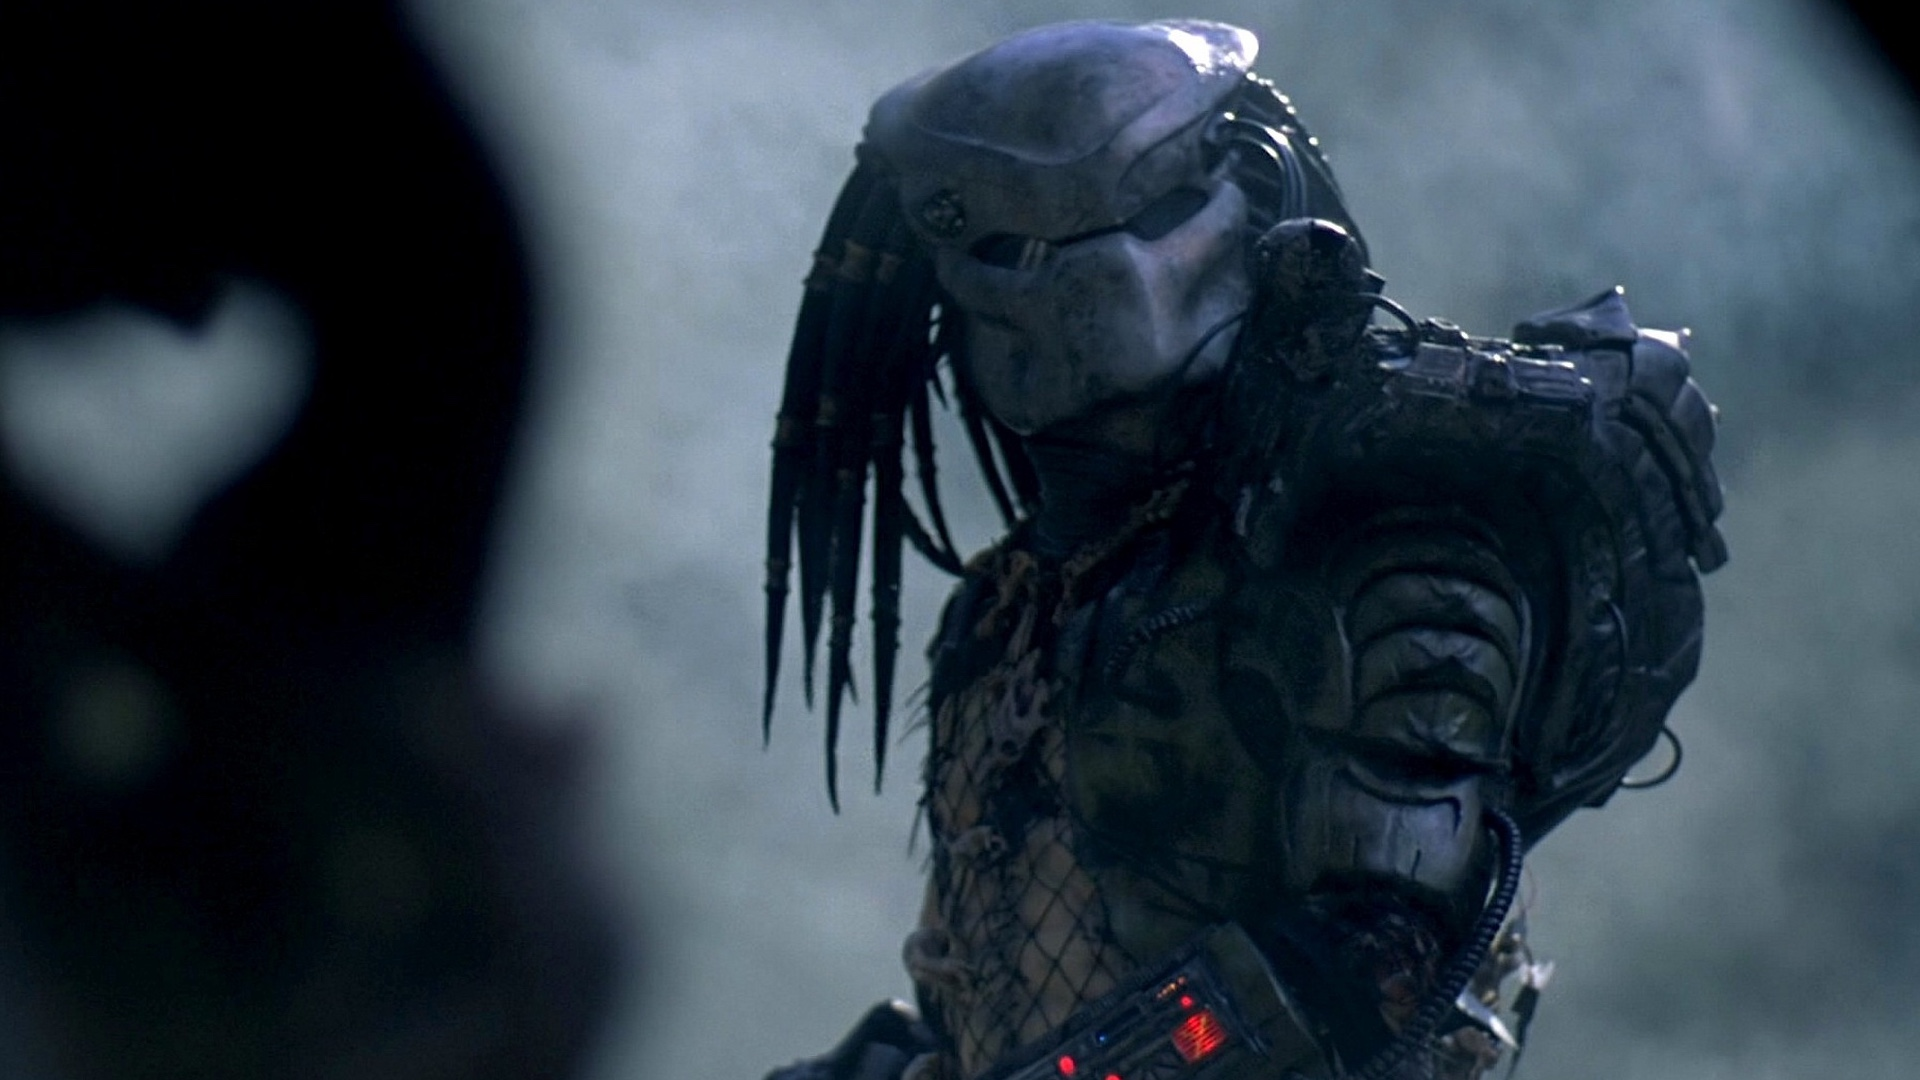 shane-blacks-the-predator-has-gone-through-extensive-reshoots-that-drastically-changed-the-third-act-social.jpg